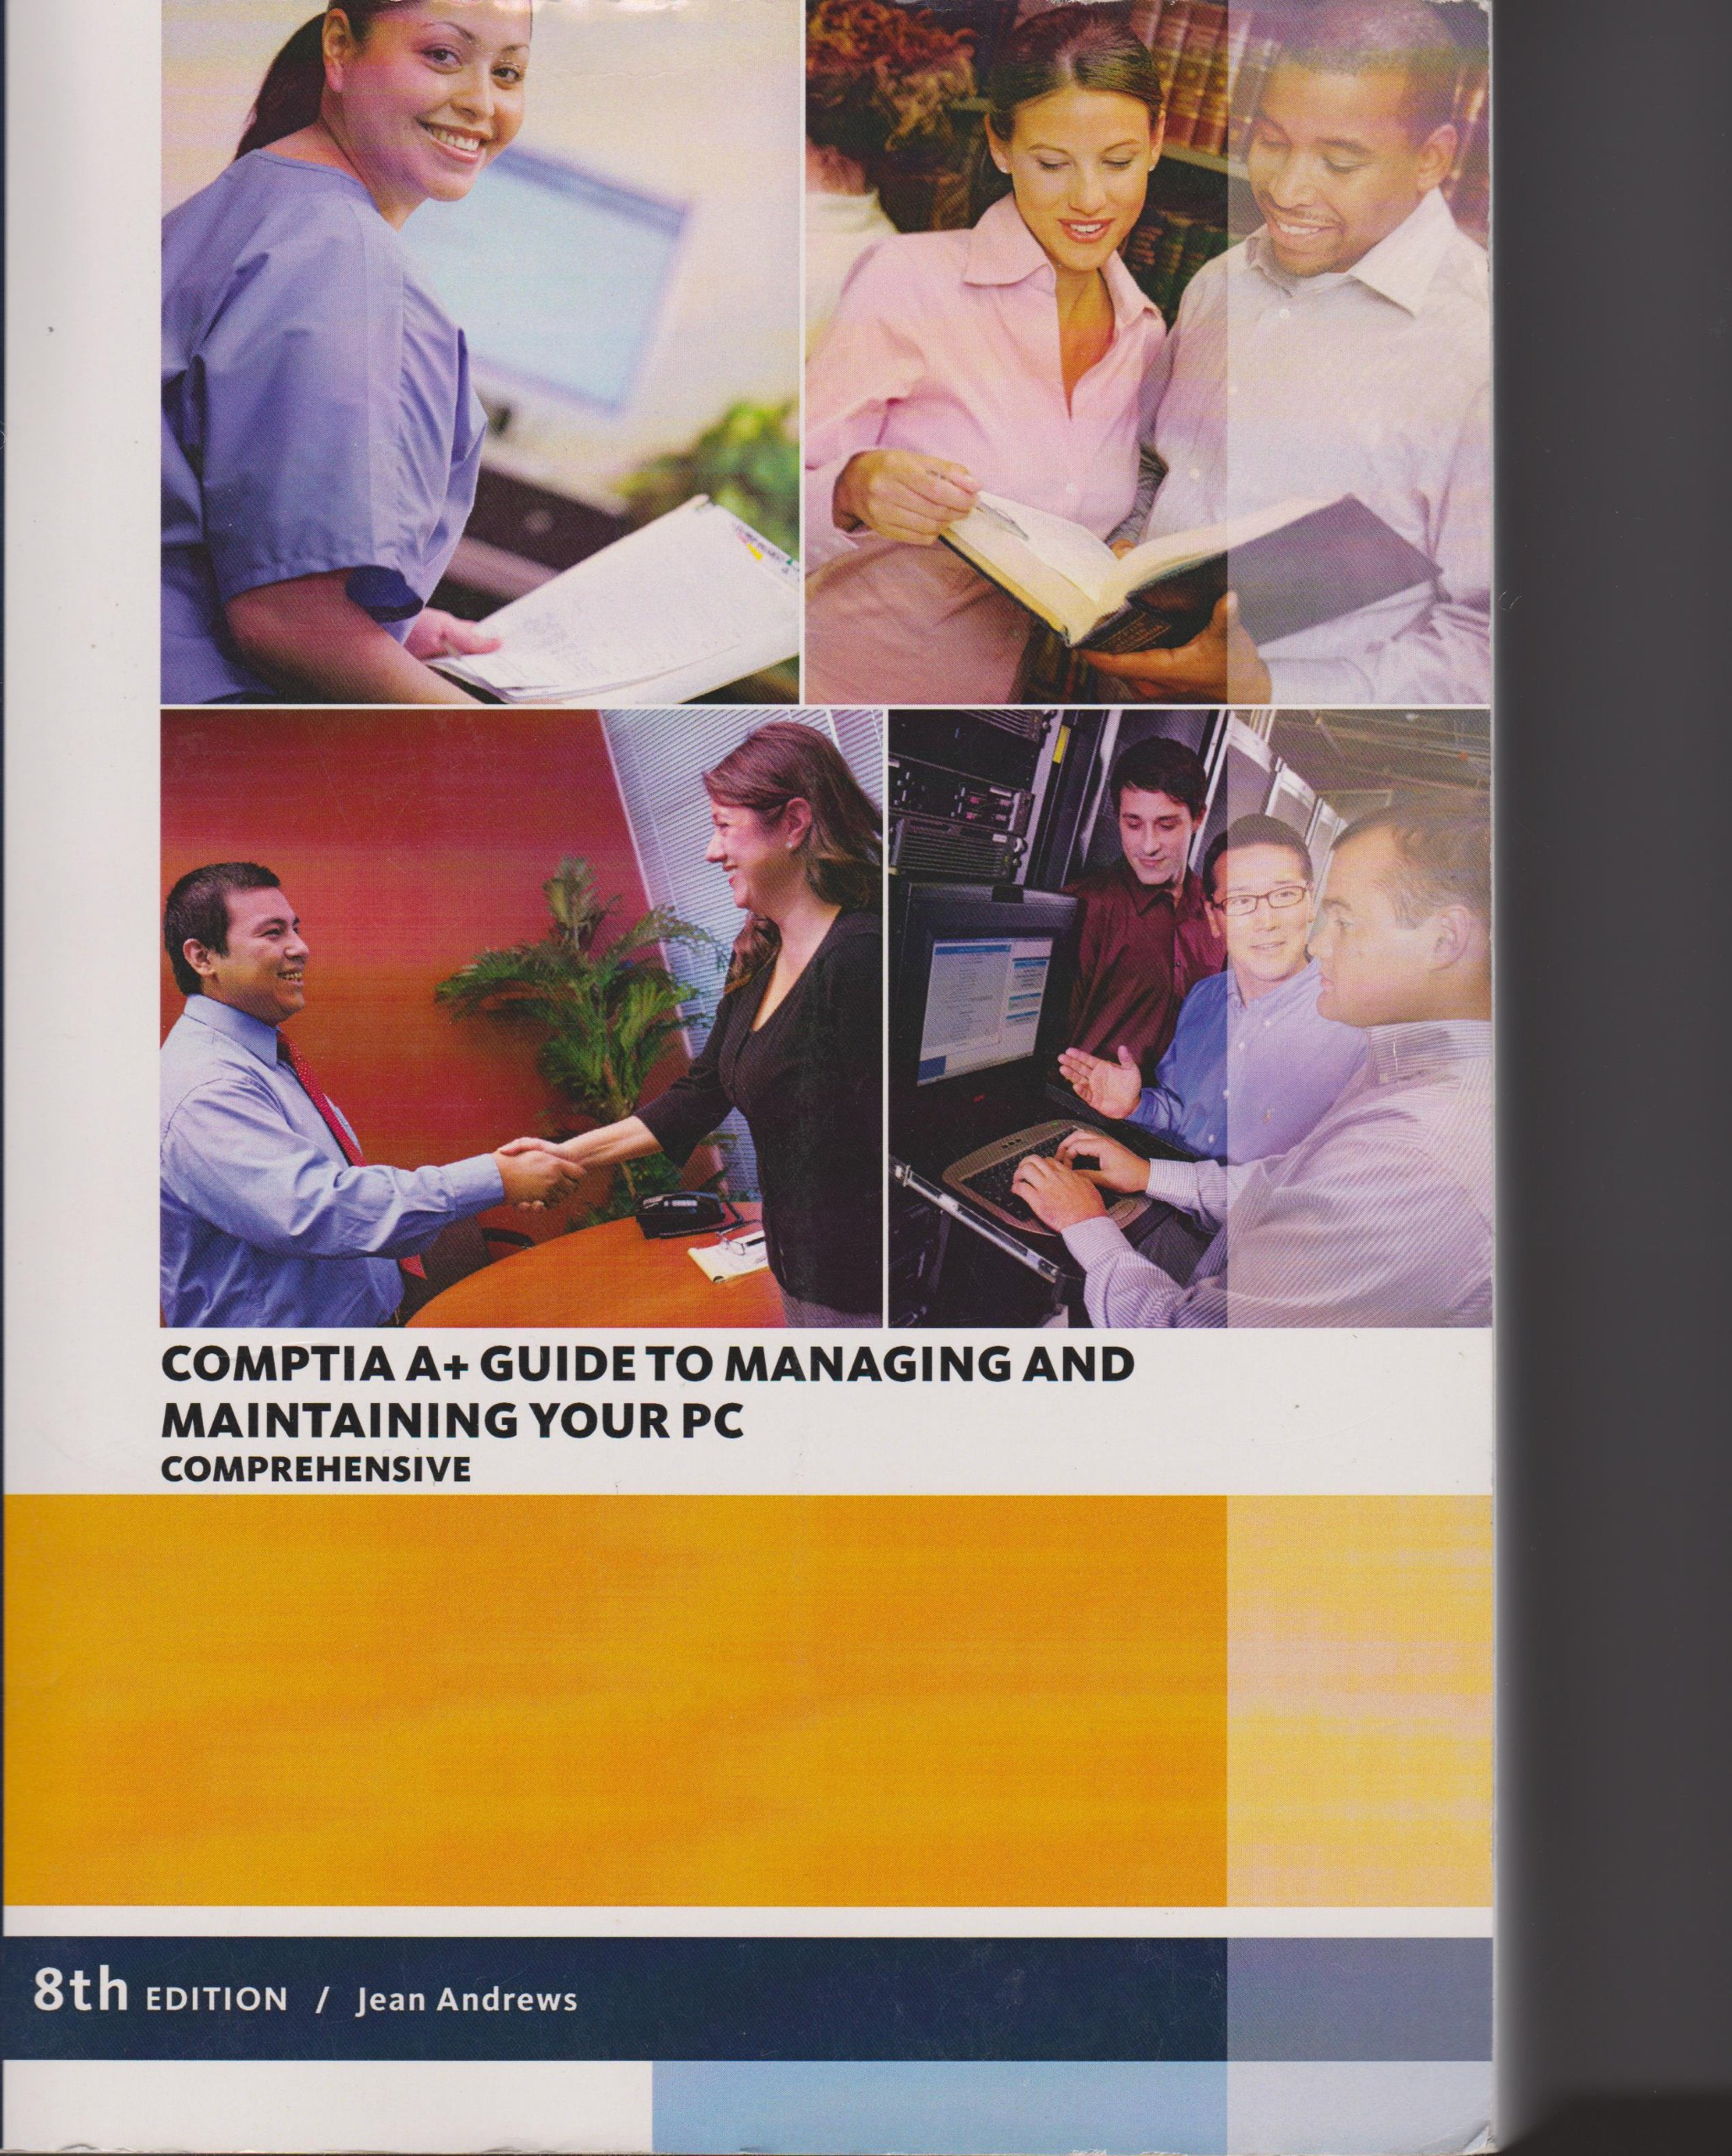 CompTIA A+ Guide to Managing and Maintaining Your PC: Comprehensive:  9781285389493: Amazon.com: Books